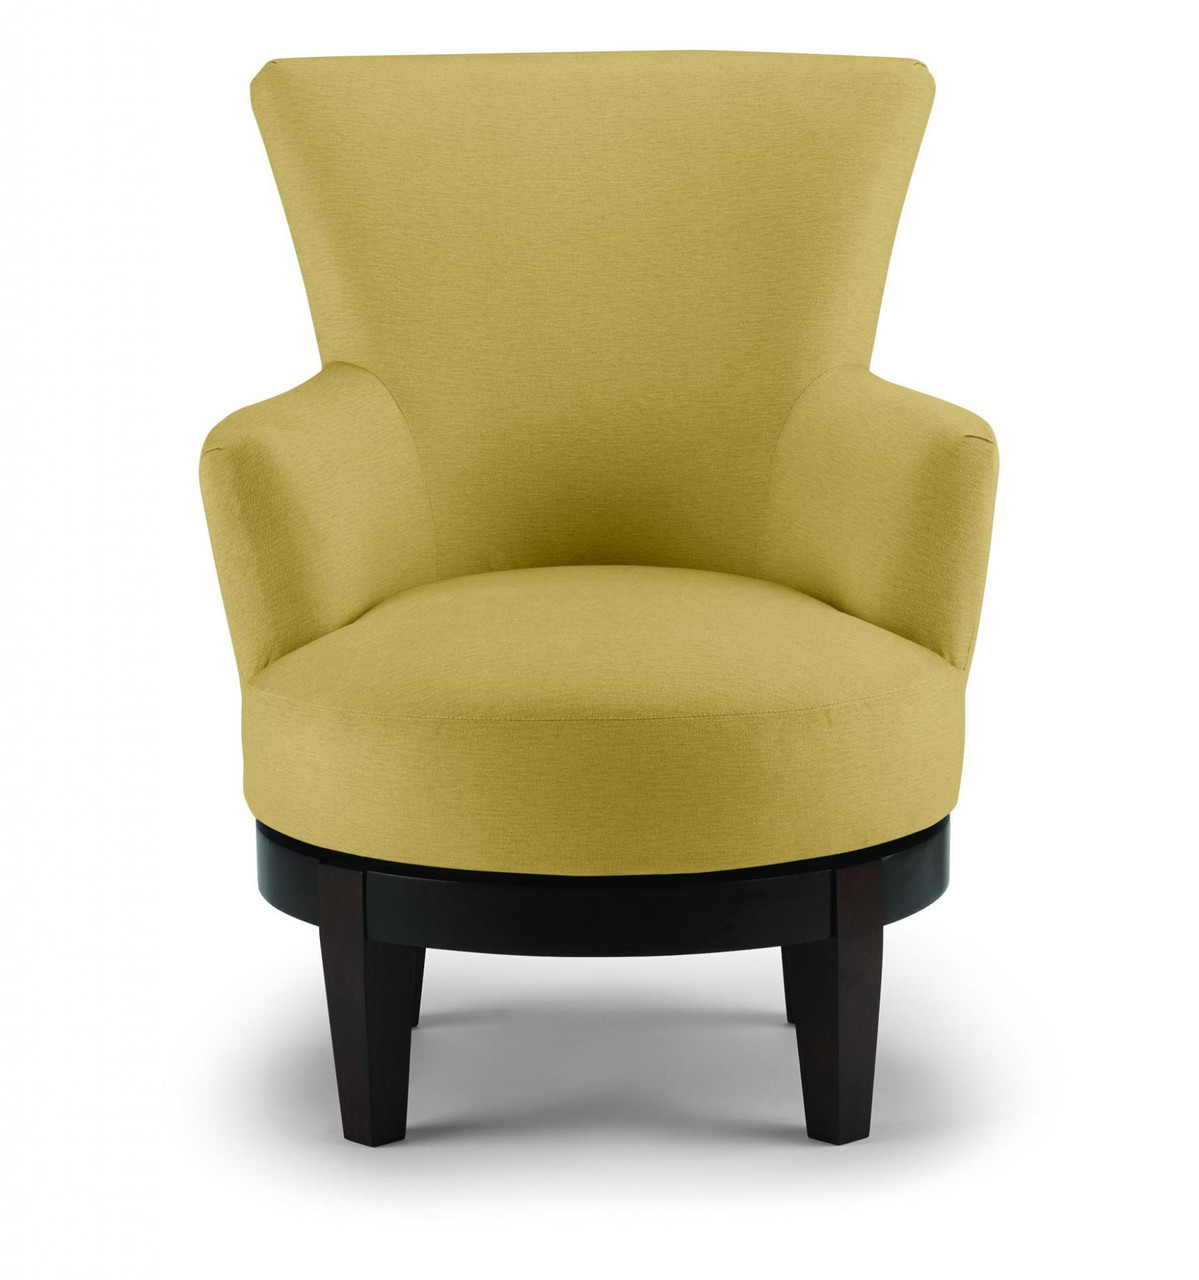 The Justine Swivel Accent Chair Available At Orange Park Furniture Serving Orange Park Fl And Surrounding Areas